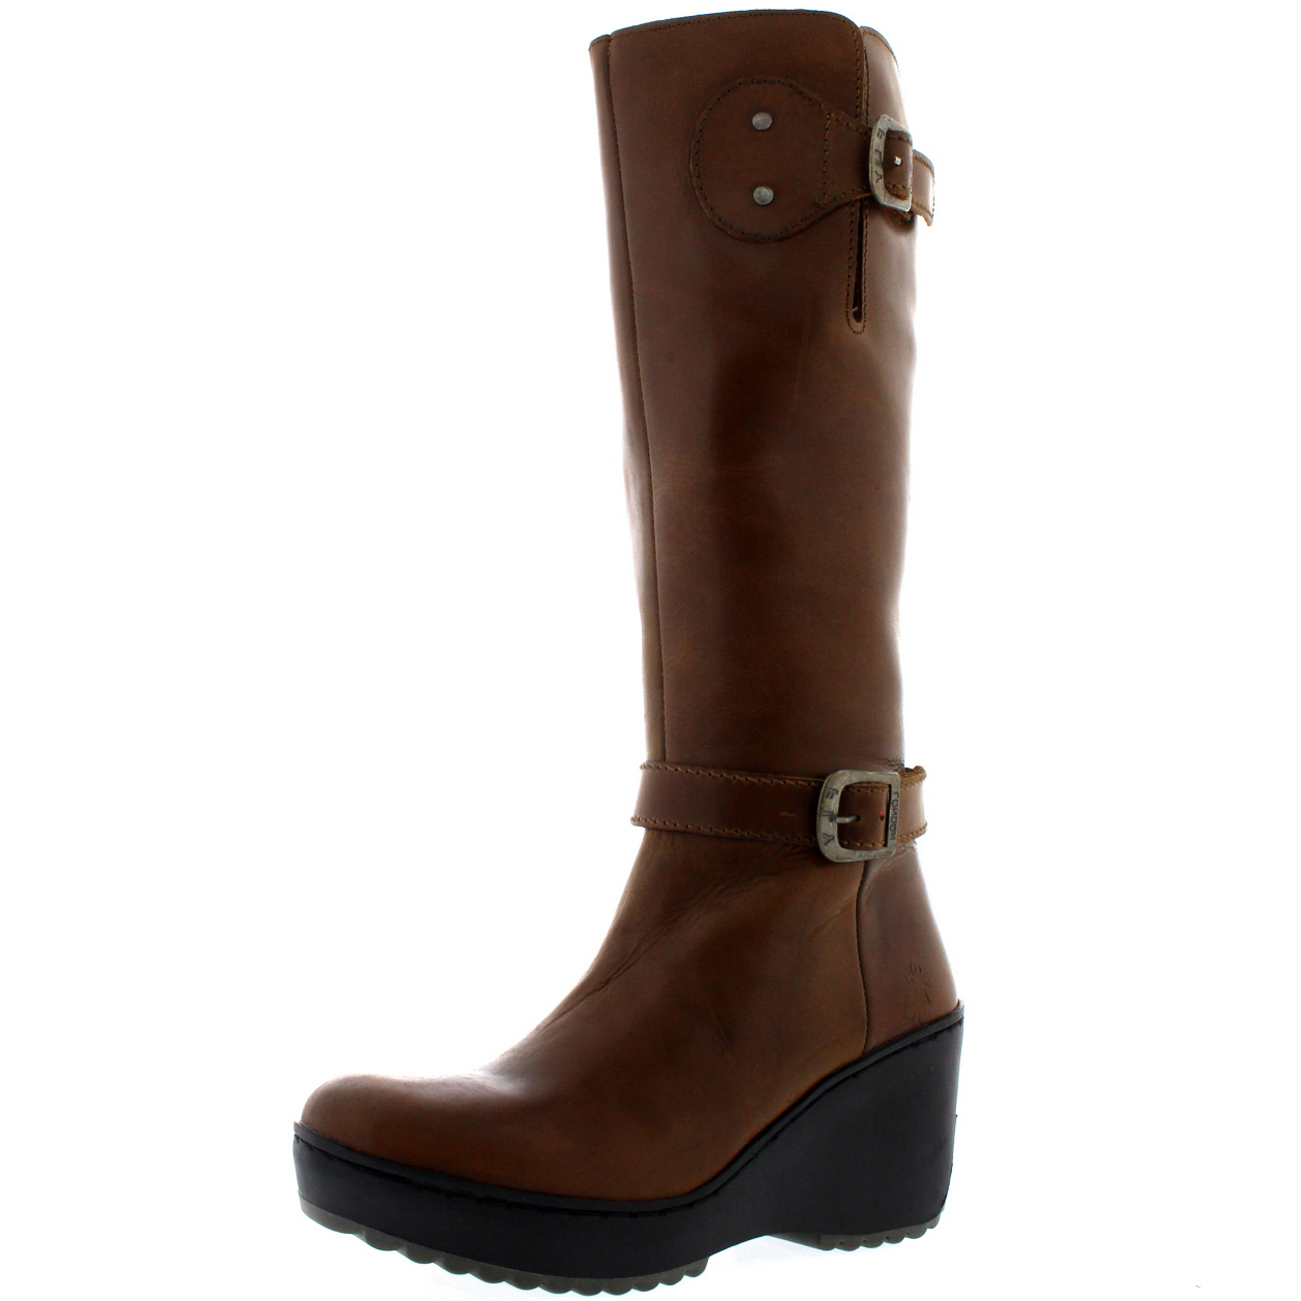 Wedge Heel Boots. Create a knockout wardrobe in wedge heel yageimer.gae a new edge in tall wedge boots or reach subtle heights in wedge yageimer.ga wedges by .